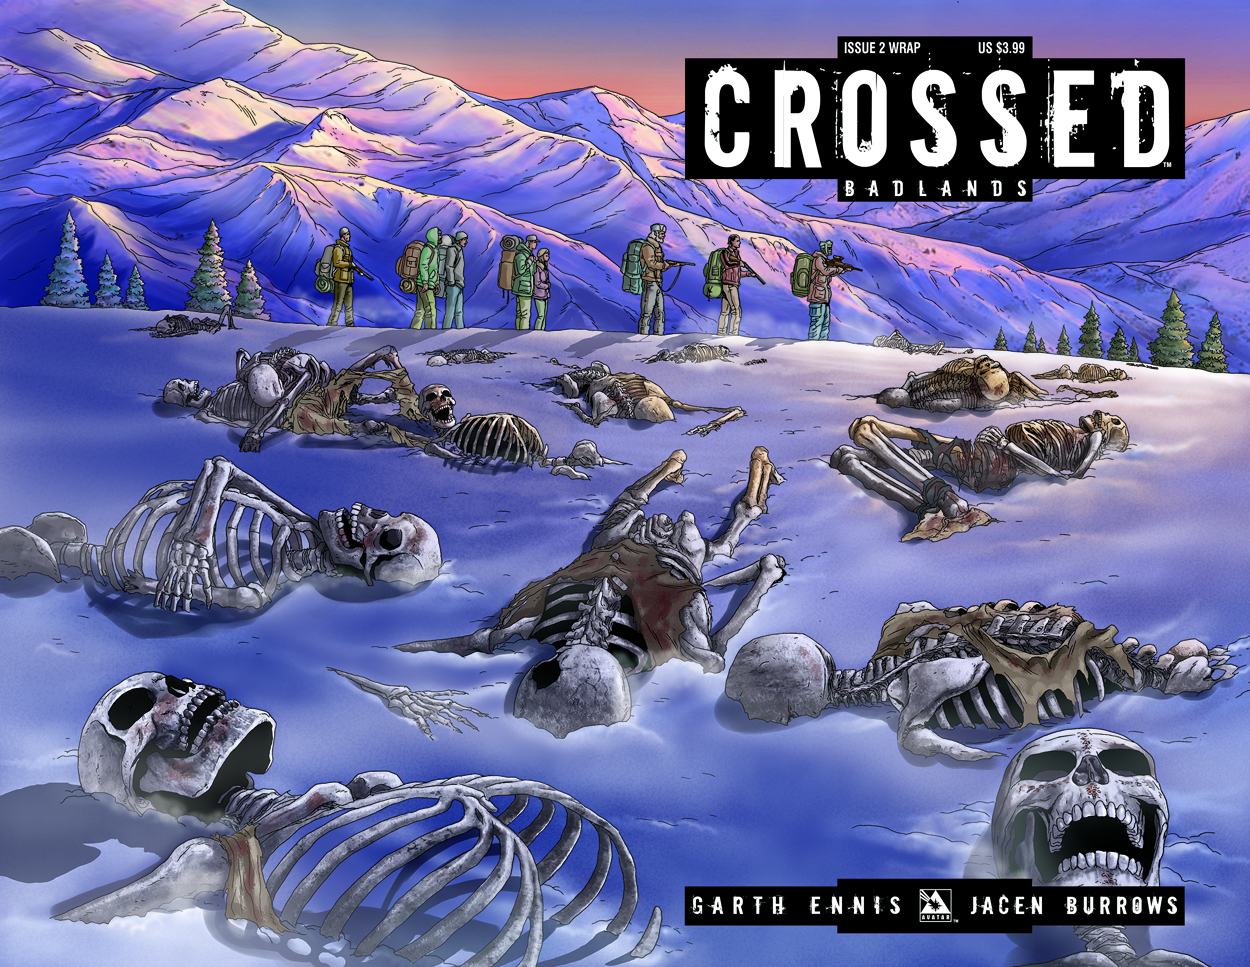 CROSSED BADLANDS #2 WRAP CVR (MR)